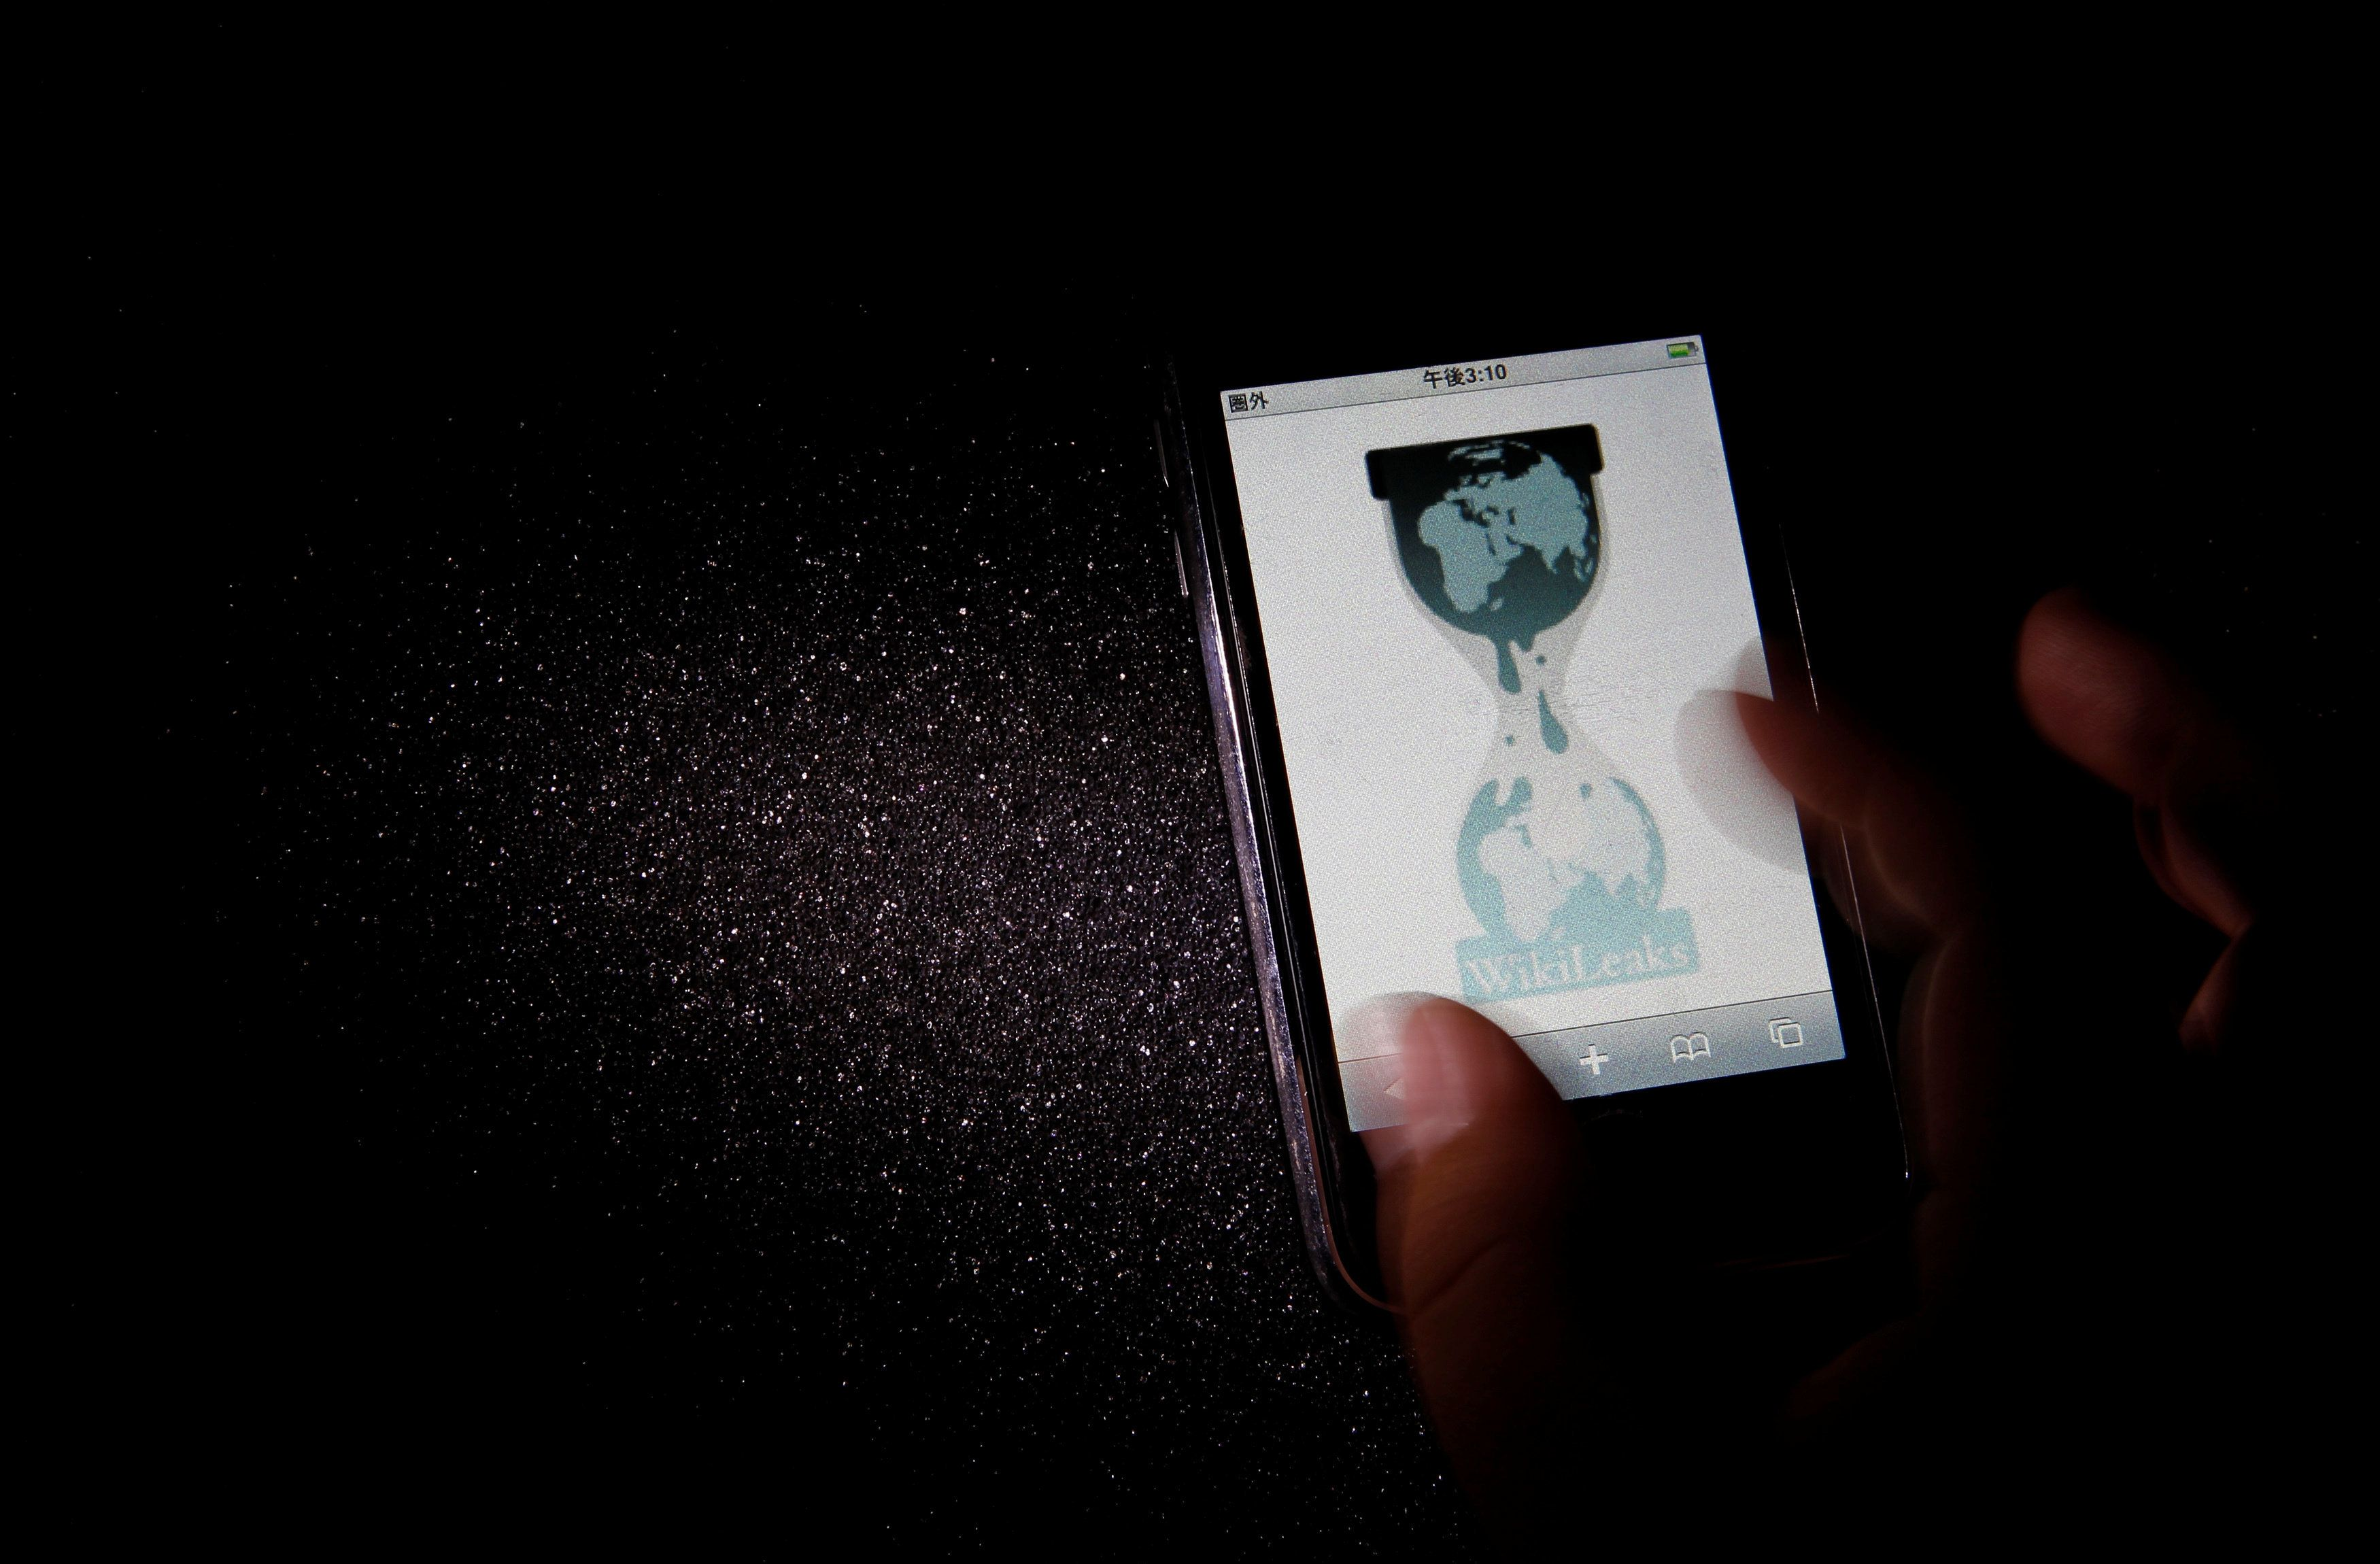 FILE PHOTO: The logo of the Wikileaks website is pictured on a smartphone in this picture illustration taken in Tokyo November 29, 2010.    REUTERS/Toru Hanai/File Photo     TPX IMAGES OF THE DAY          TPX IMAGES OF THE DAY